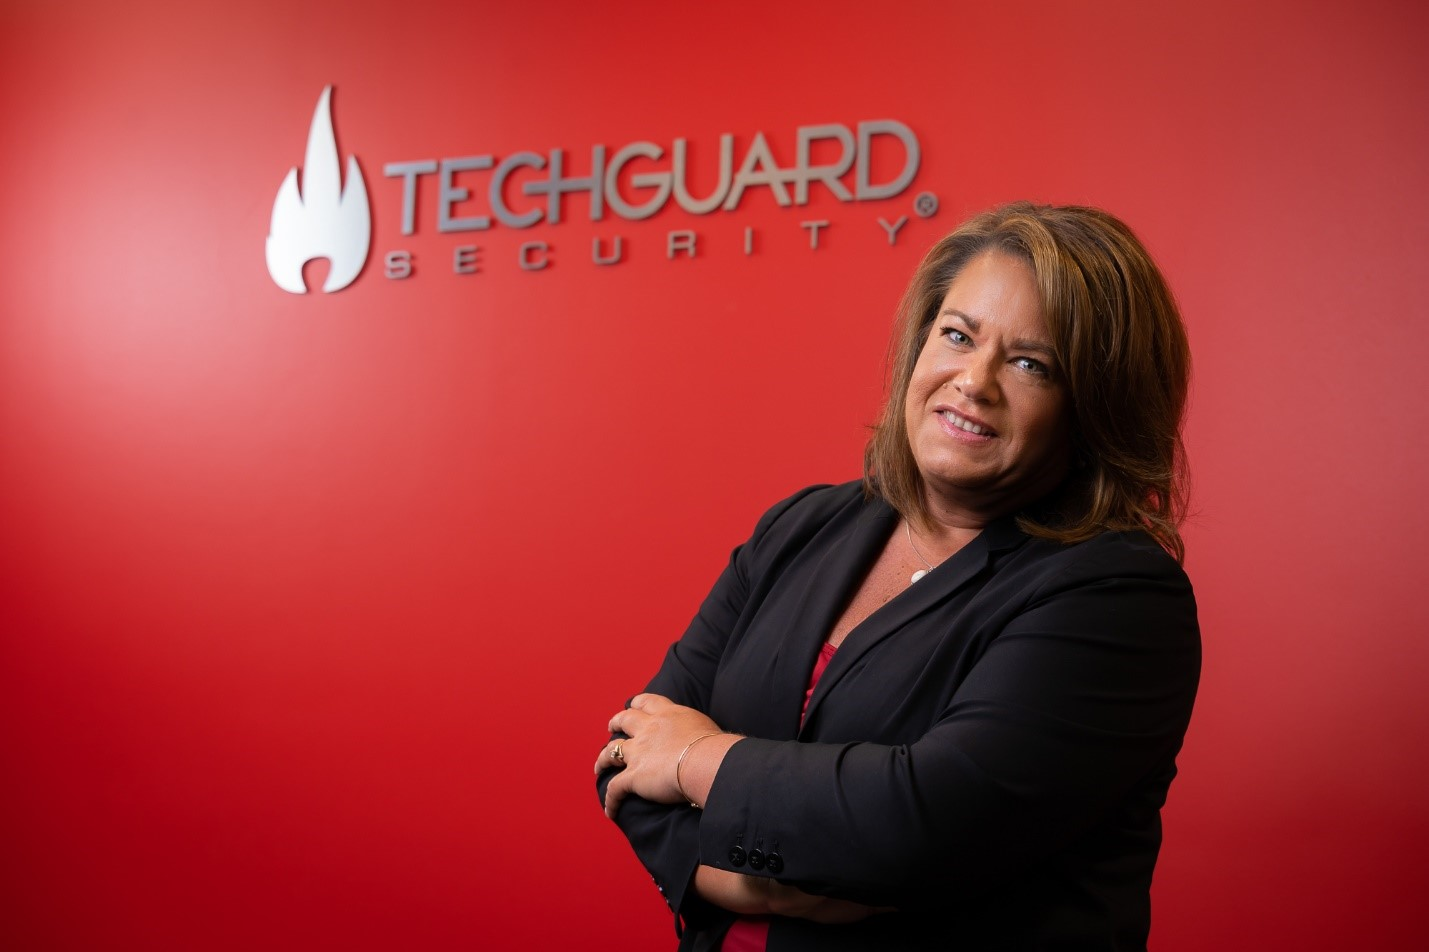 CEO/President of TechGuard, Carla Stone